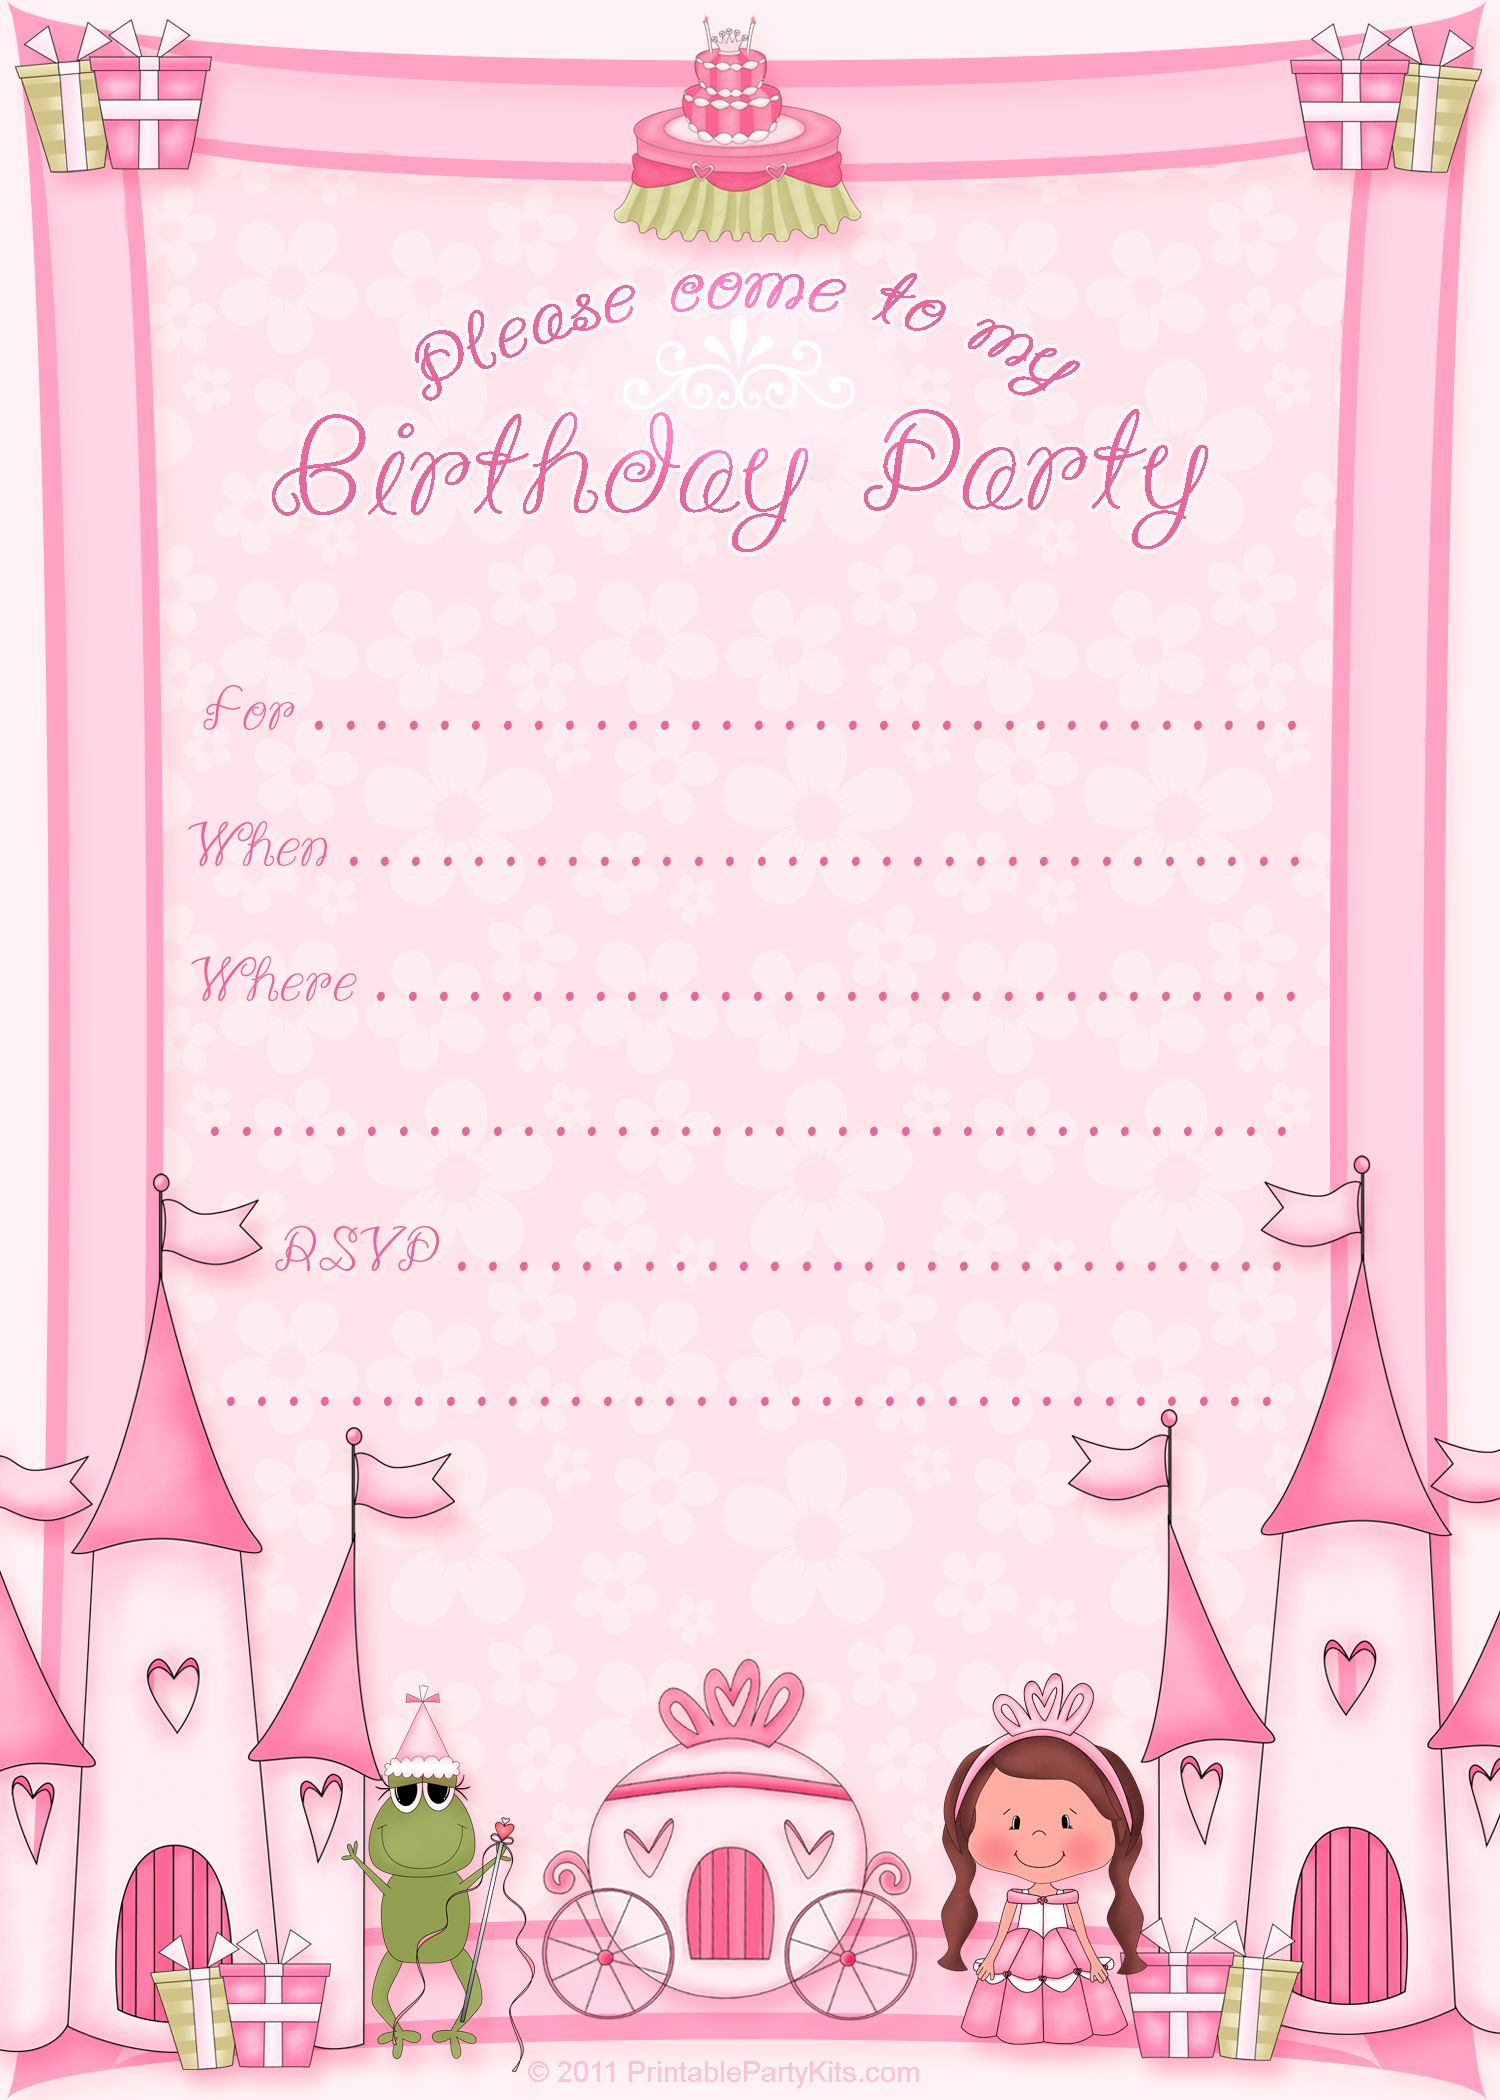 Free printable invitation pinned for kidfolio the parenting mobile free printable invitation pinned for kidfolio the parenting mobile app that makes sharing a snap stopboris Gallery